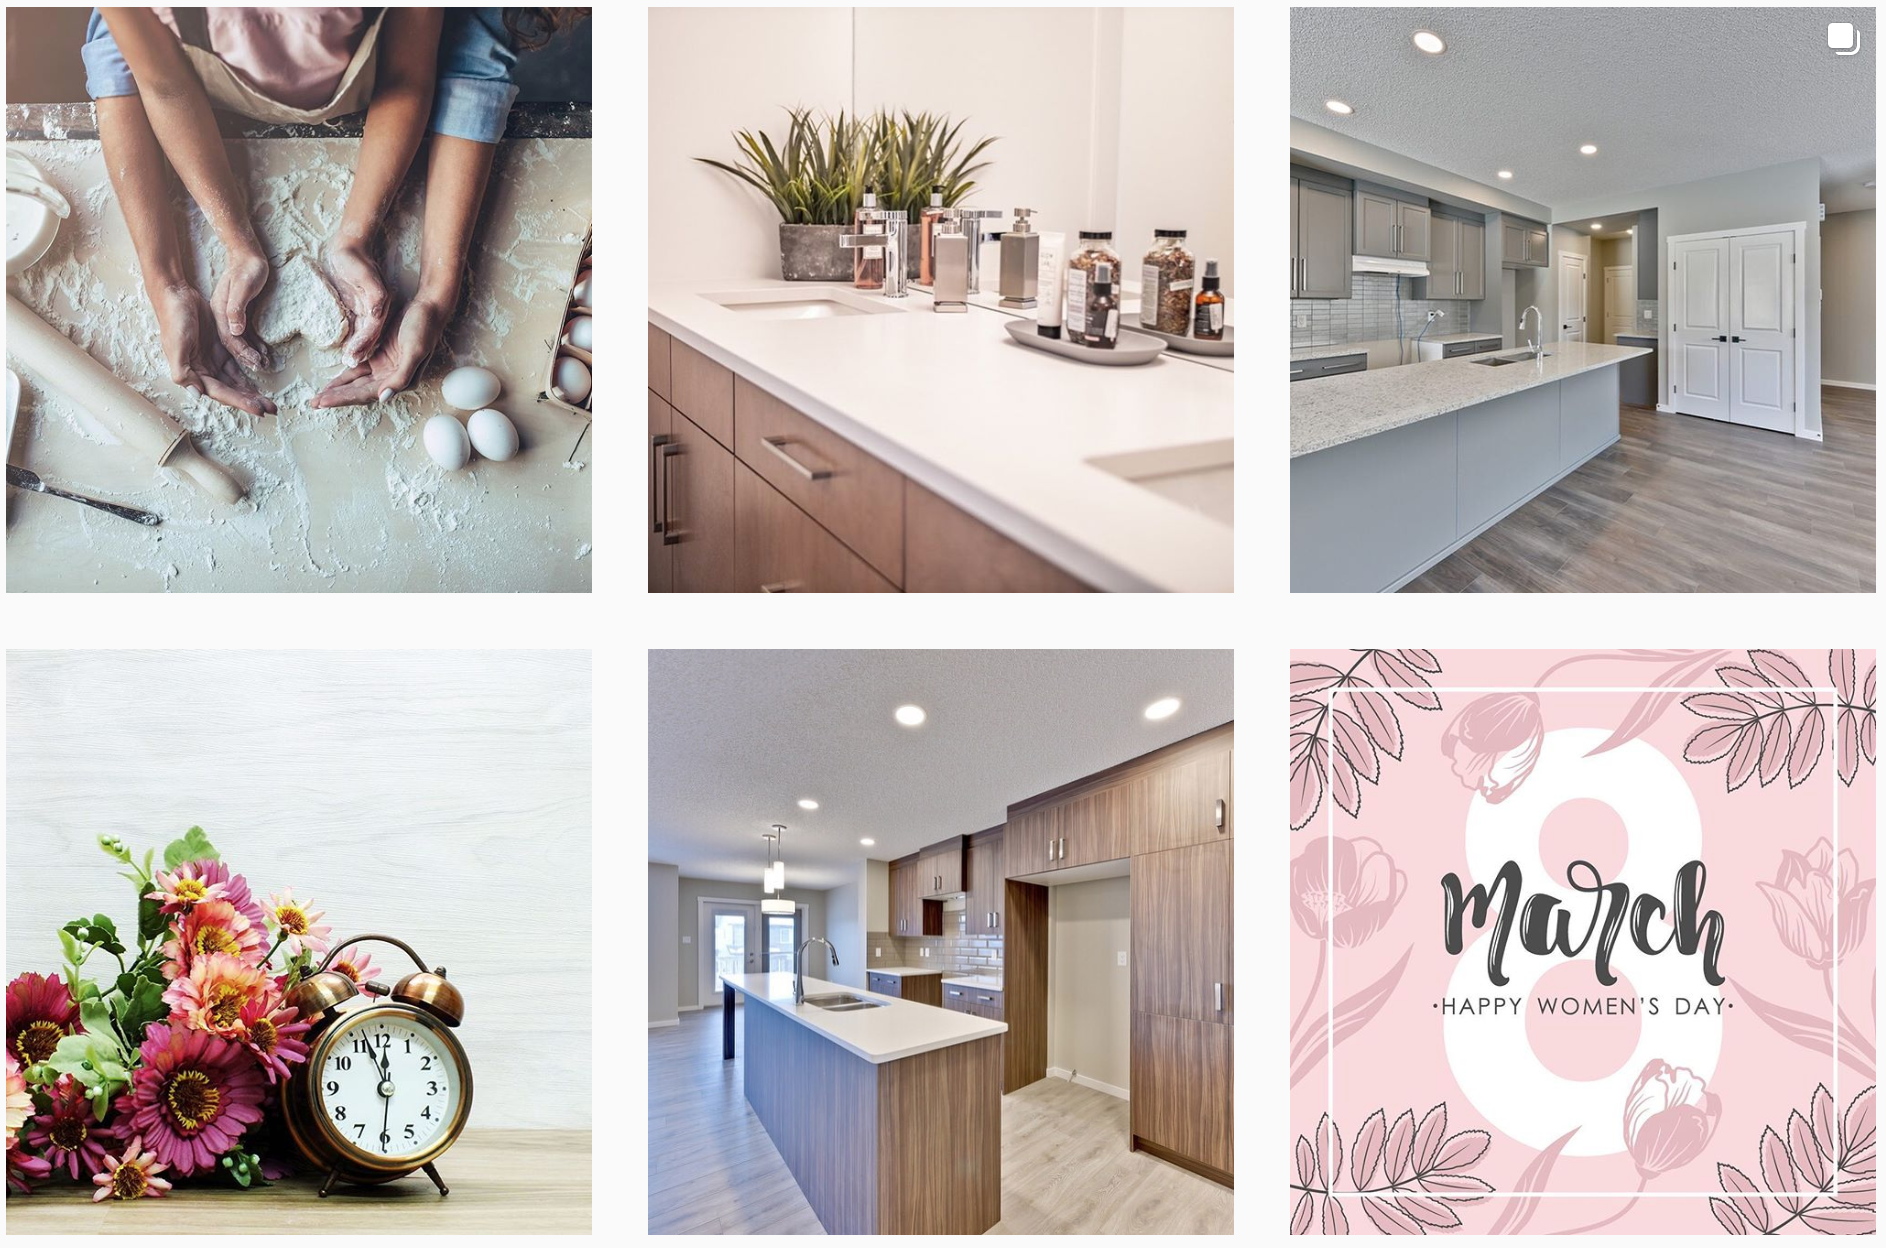 10 Home Builders To Follow On Instagram In 2019 Lasso Crm